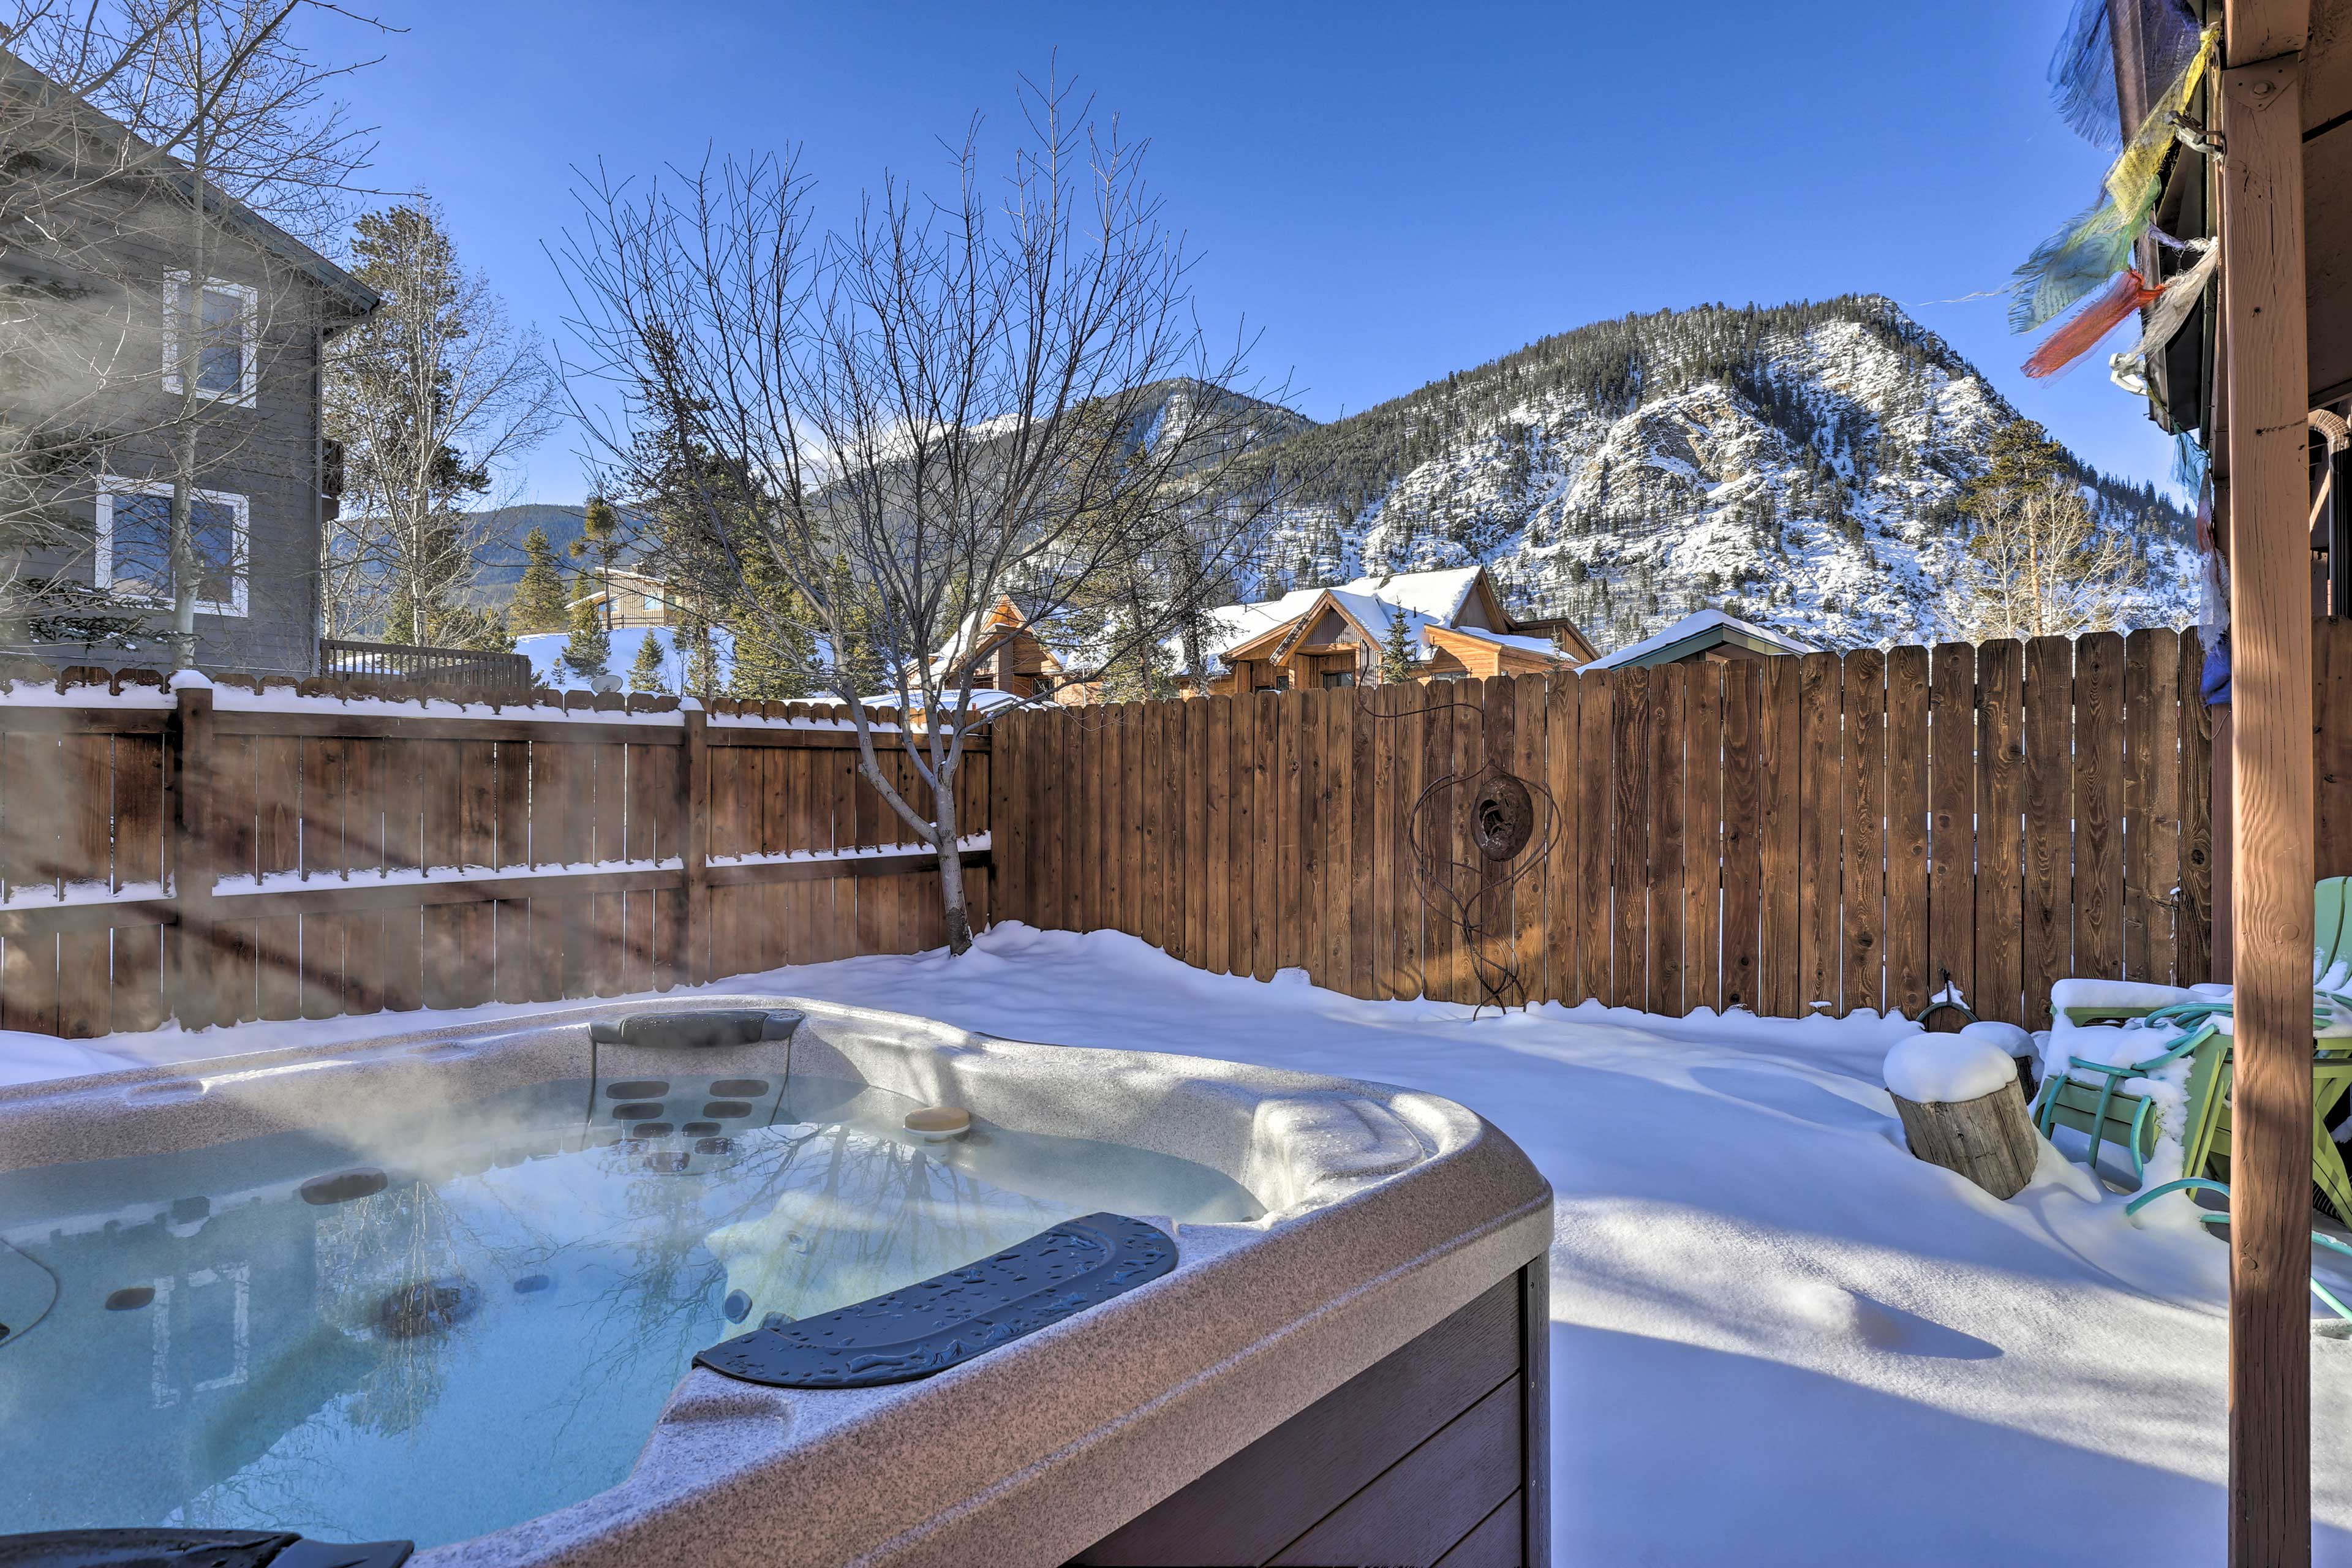 Soak in the new private hot tub looking out at the mountains!